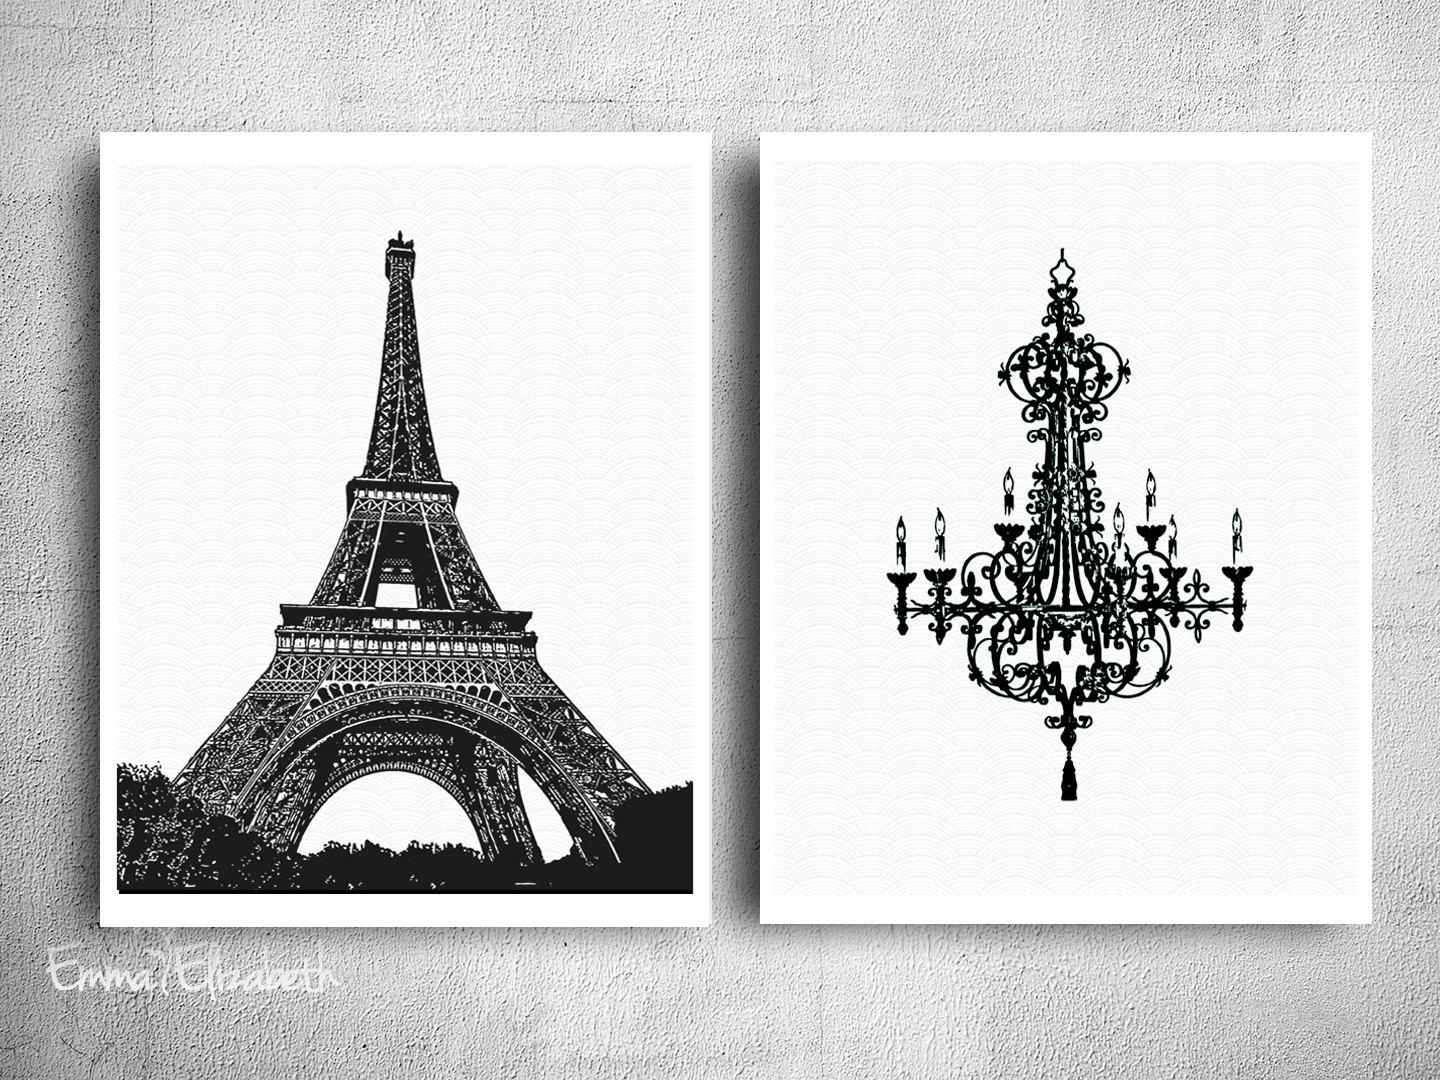 Chic Wall Decor Black White Poster Print Simple Clean Art French Regarding Eiffel Tower Wall Hanging Art (Image 3 of 20)